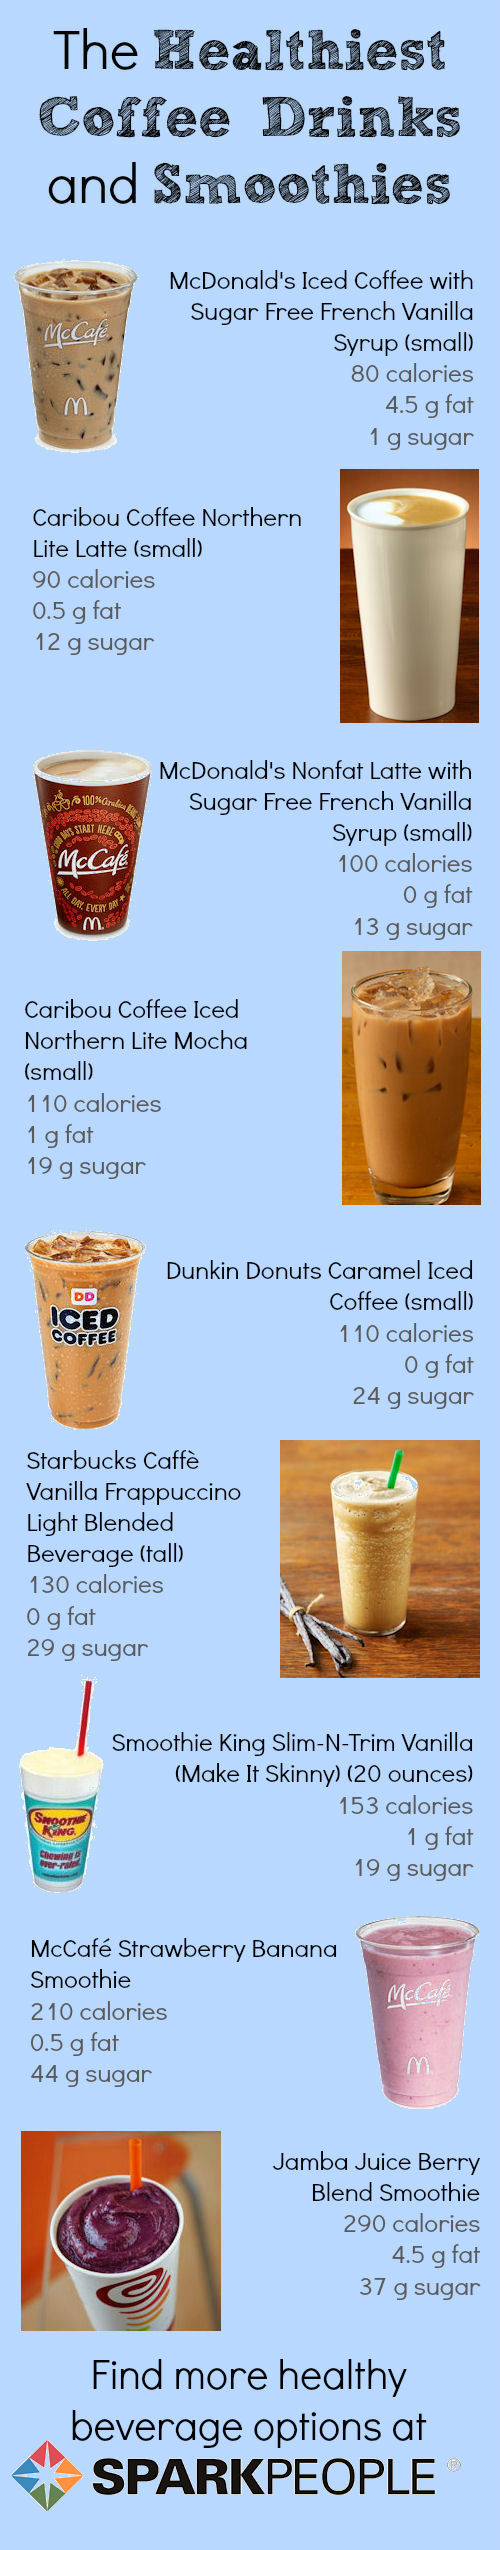 Healthiest Fast Food Fruit Smoothies